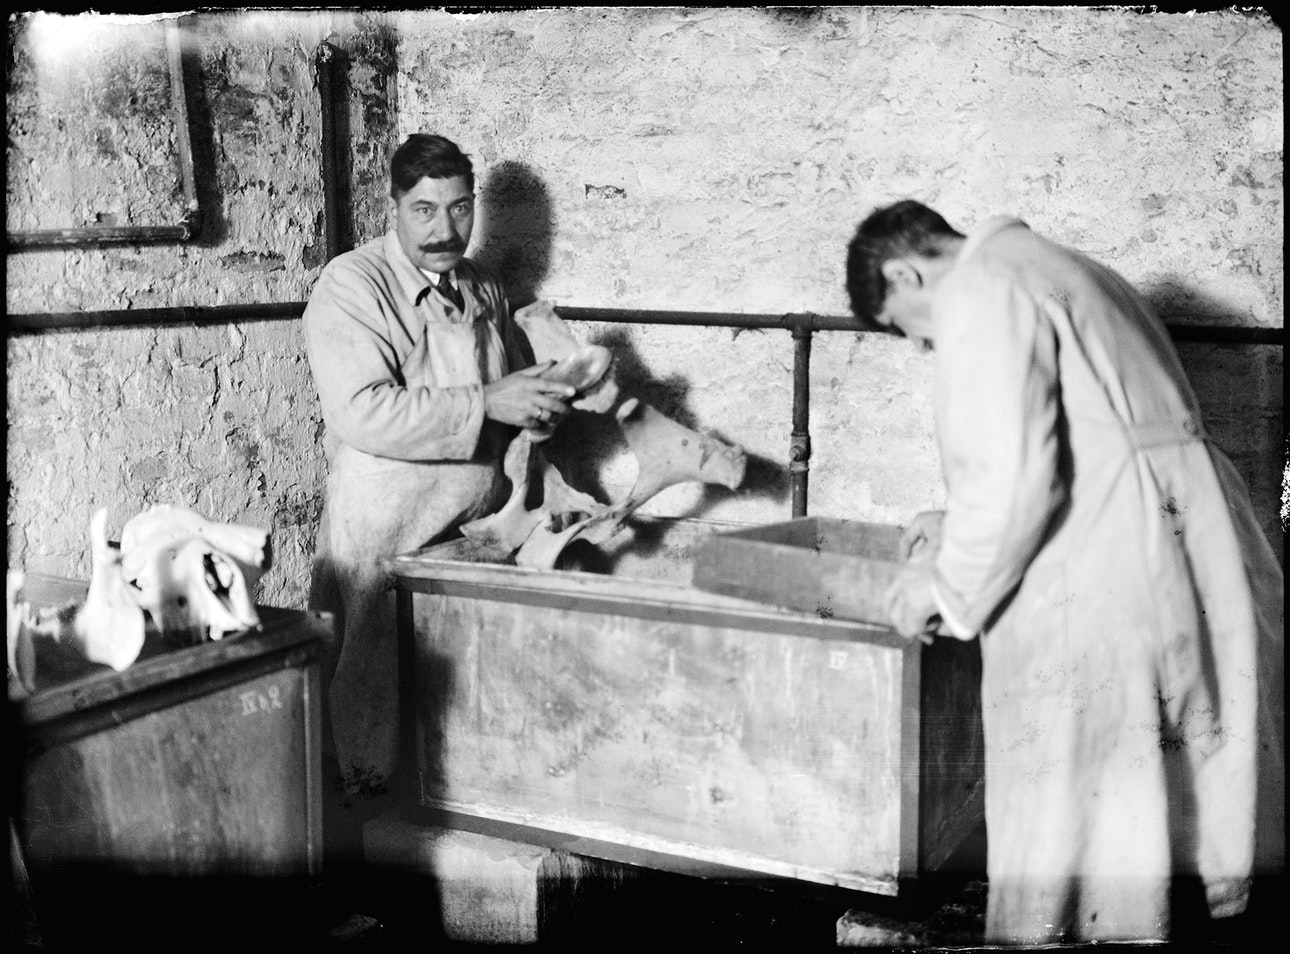 Michal-Sita-&-Wieslaw-Rakowski-(1903-1948)---015-(from-the-series-'The-Zoological-Archive')